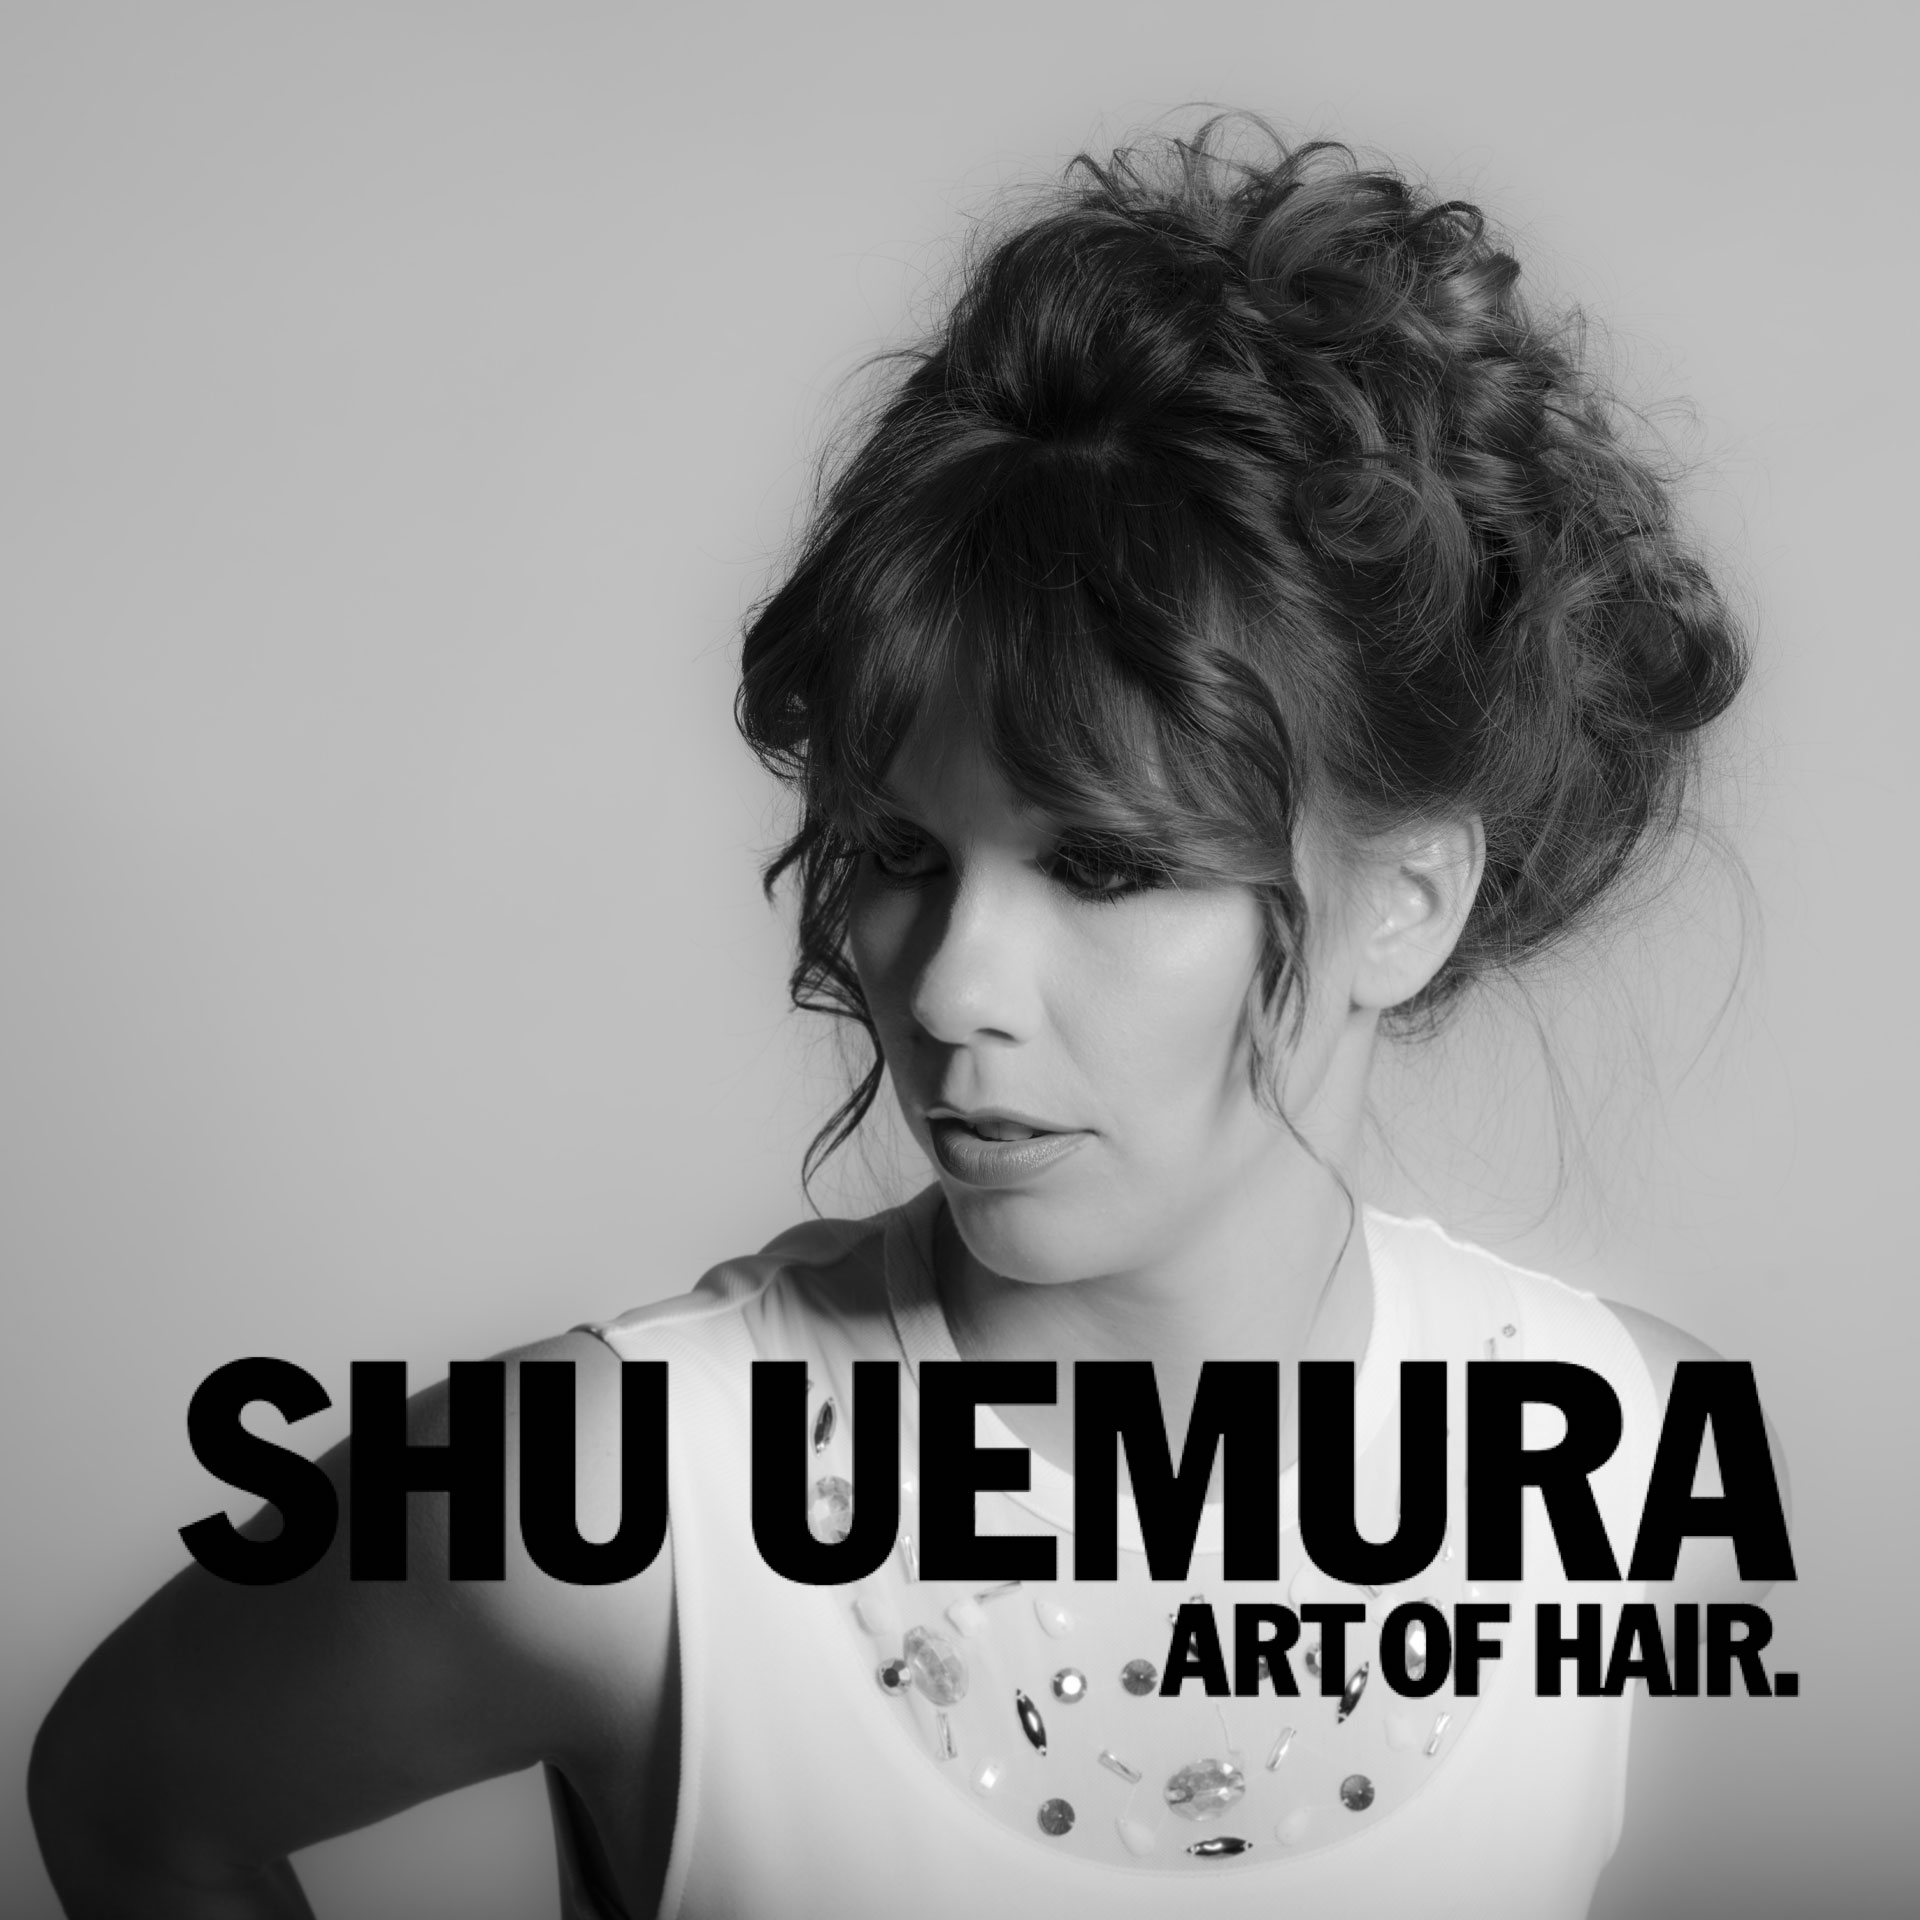 Shu uemura art of hair shop online aalam the salon for Aalam salon dallas